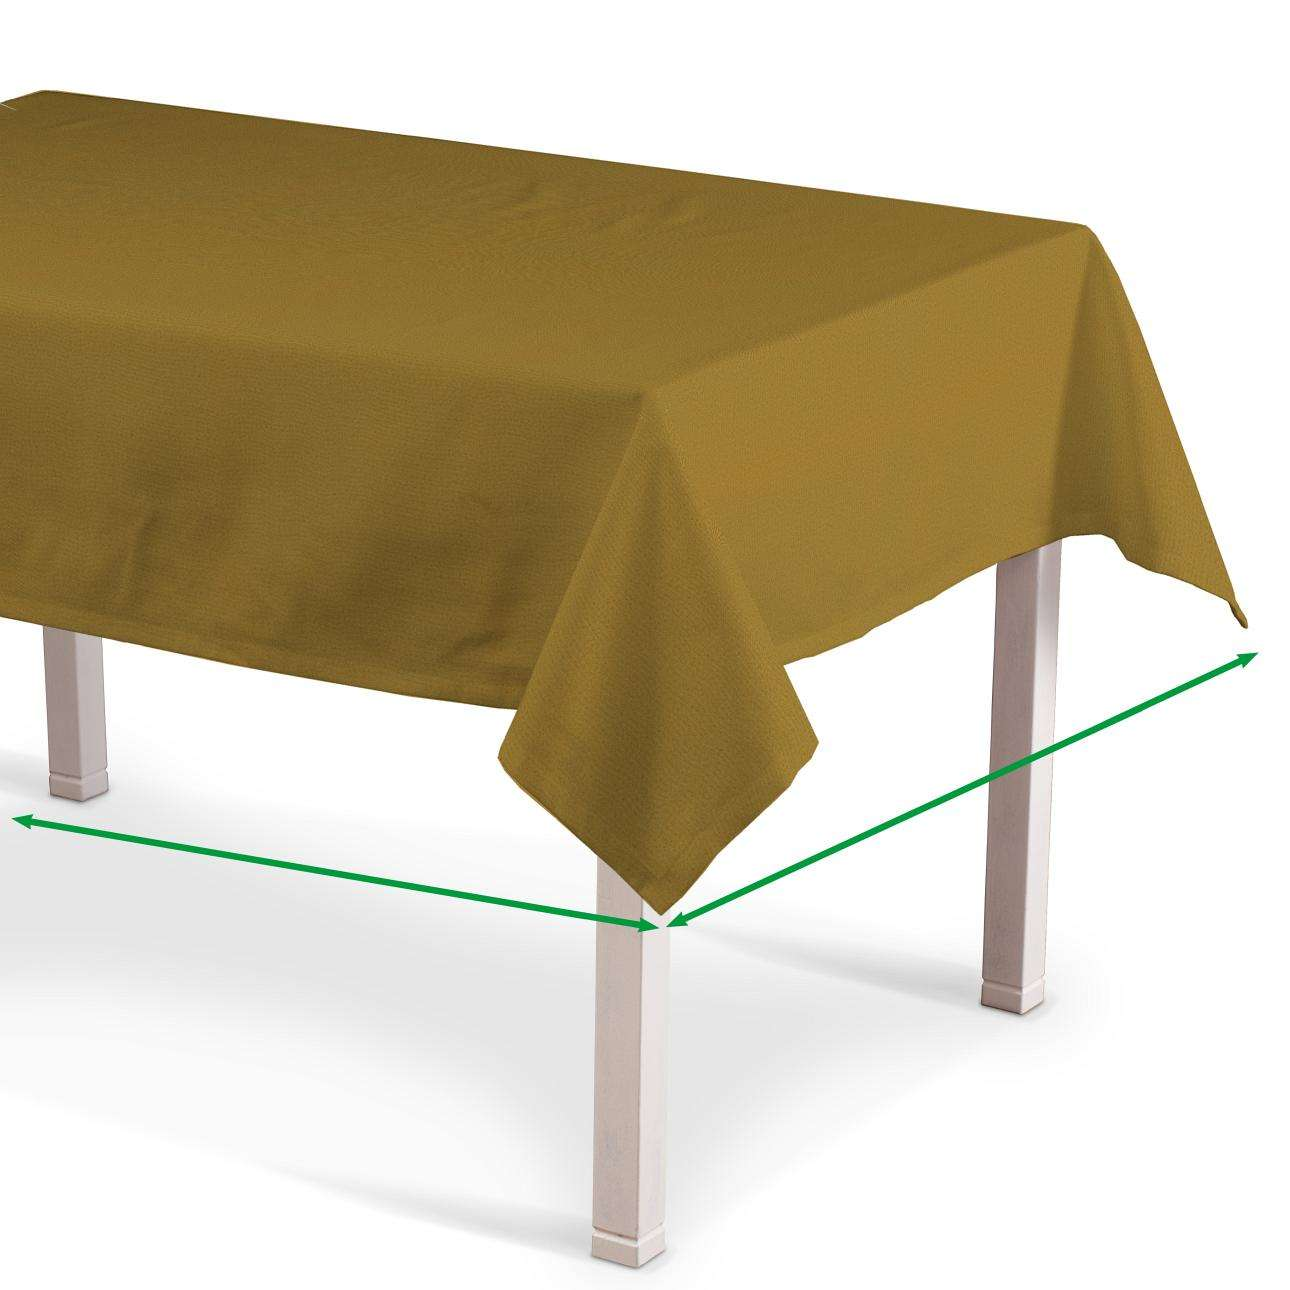 Rectangular tablecloth in collection Milano, fabric: 150-27